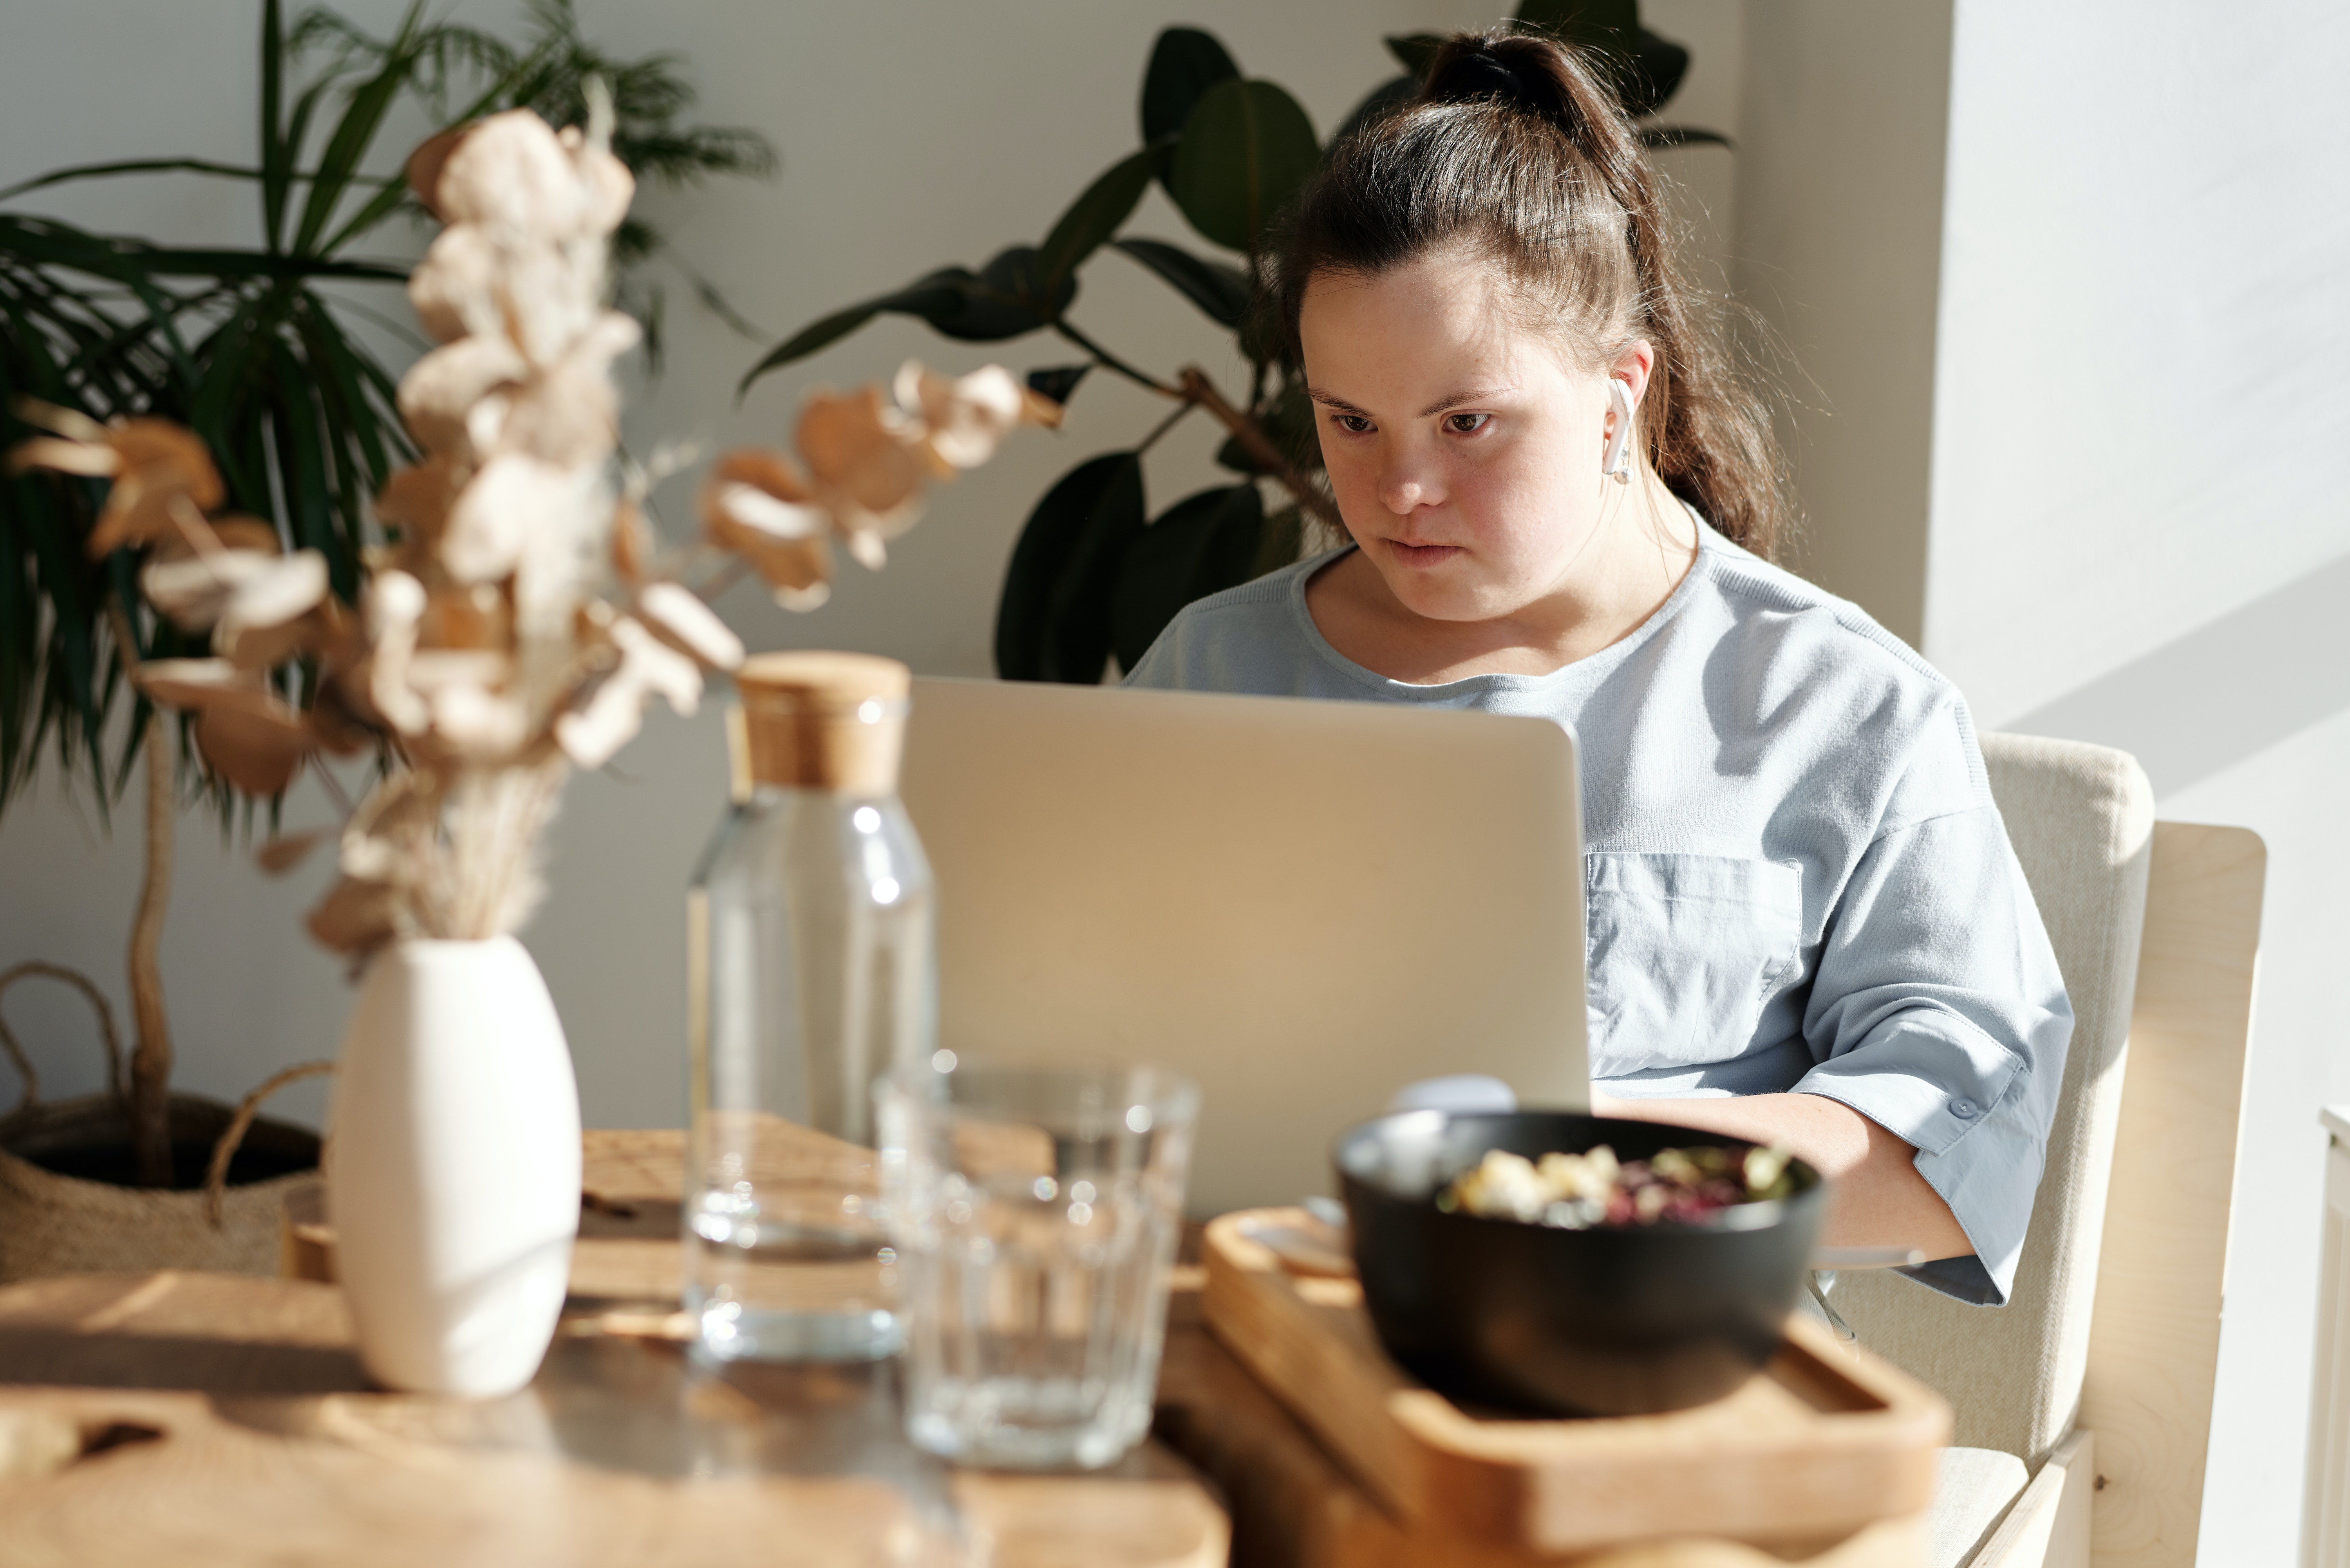 Adult with Down syndrome working